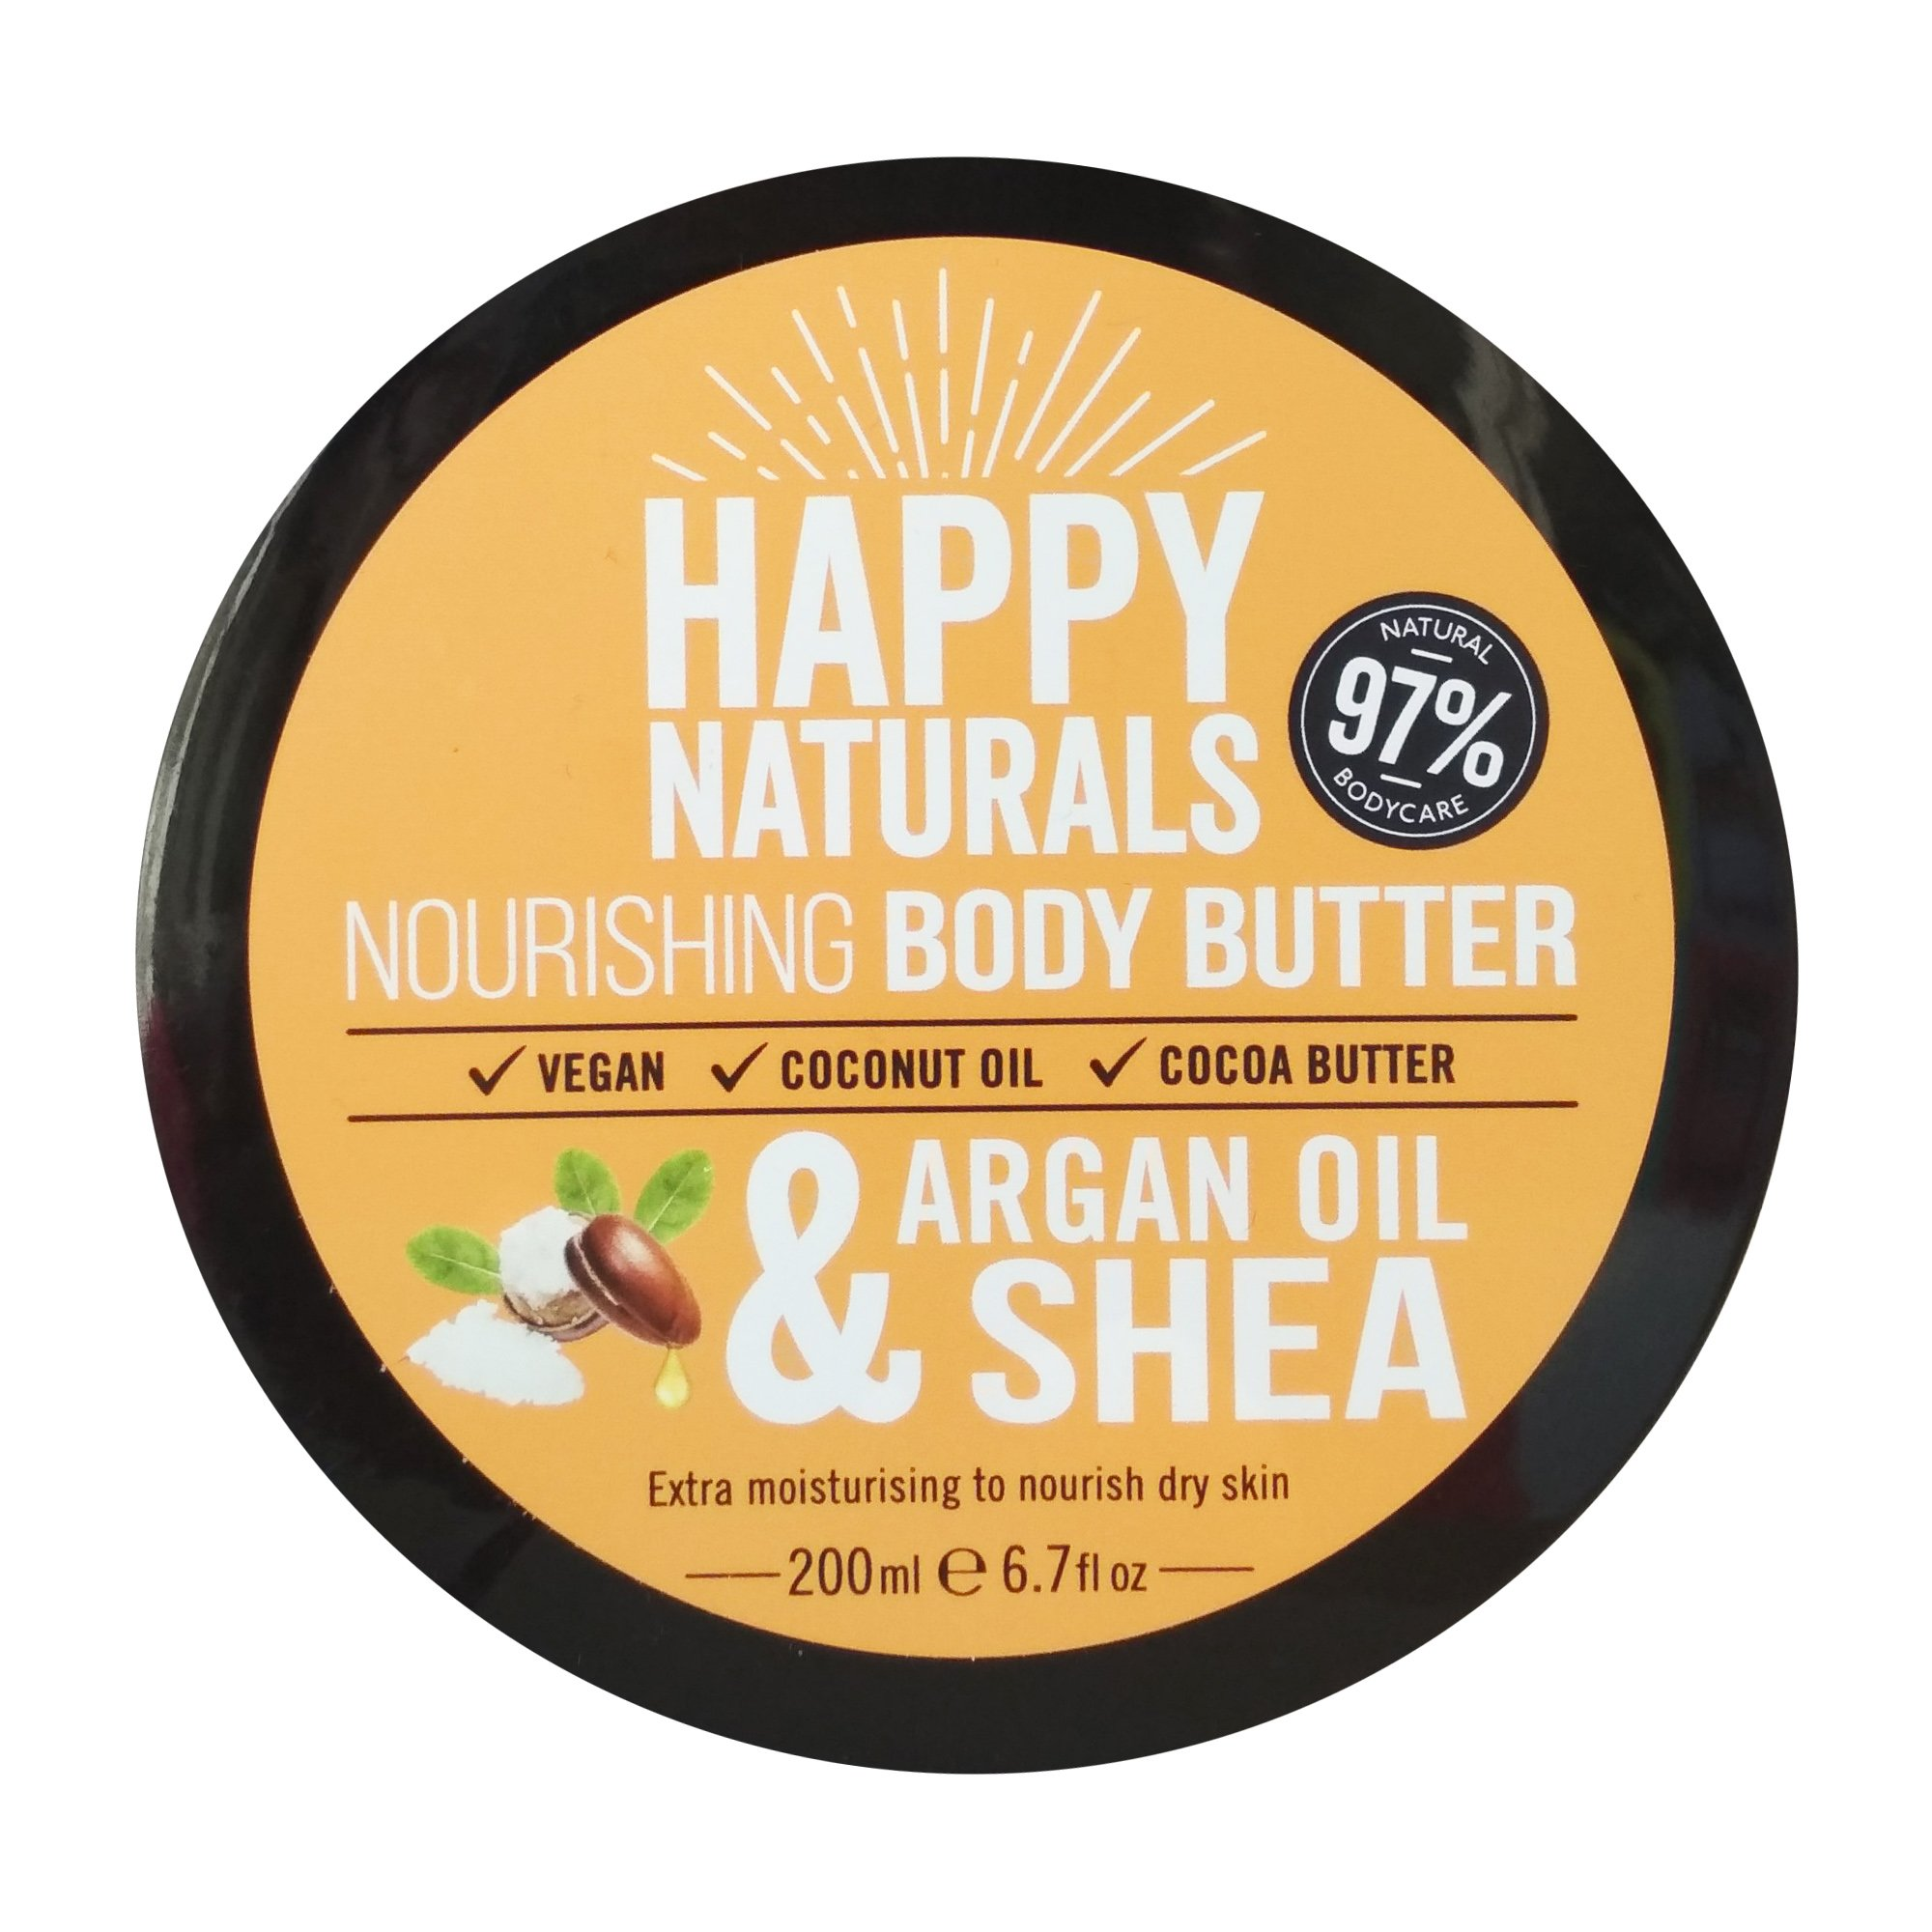 Happy Naturals Argan Oil & Shea Nourishing Body Butter Ενυδατική Κρέμα Σώματος με Έλαιο Argan 200ml